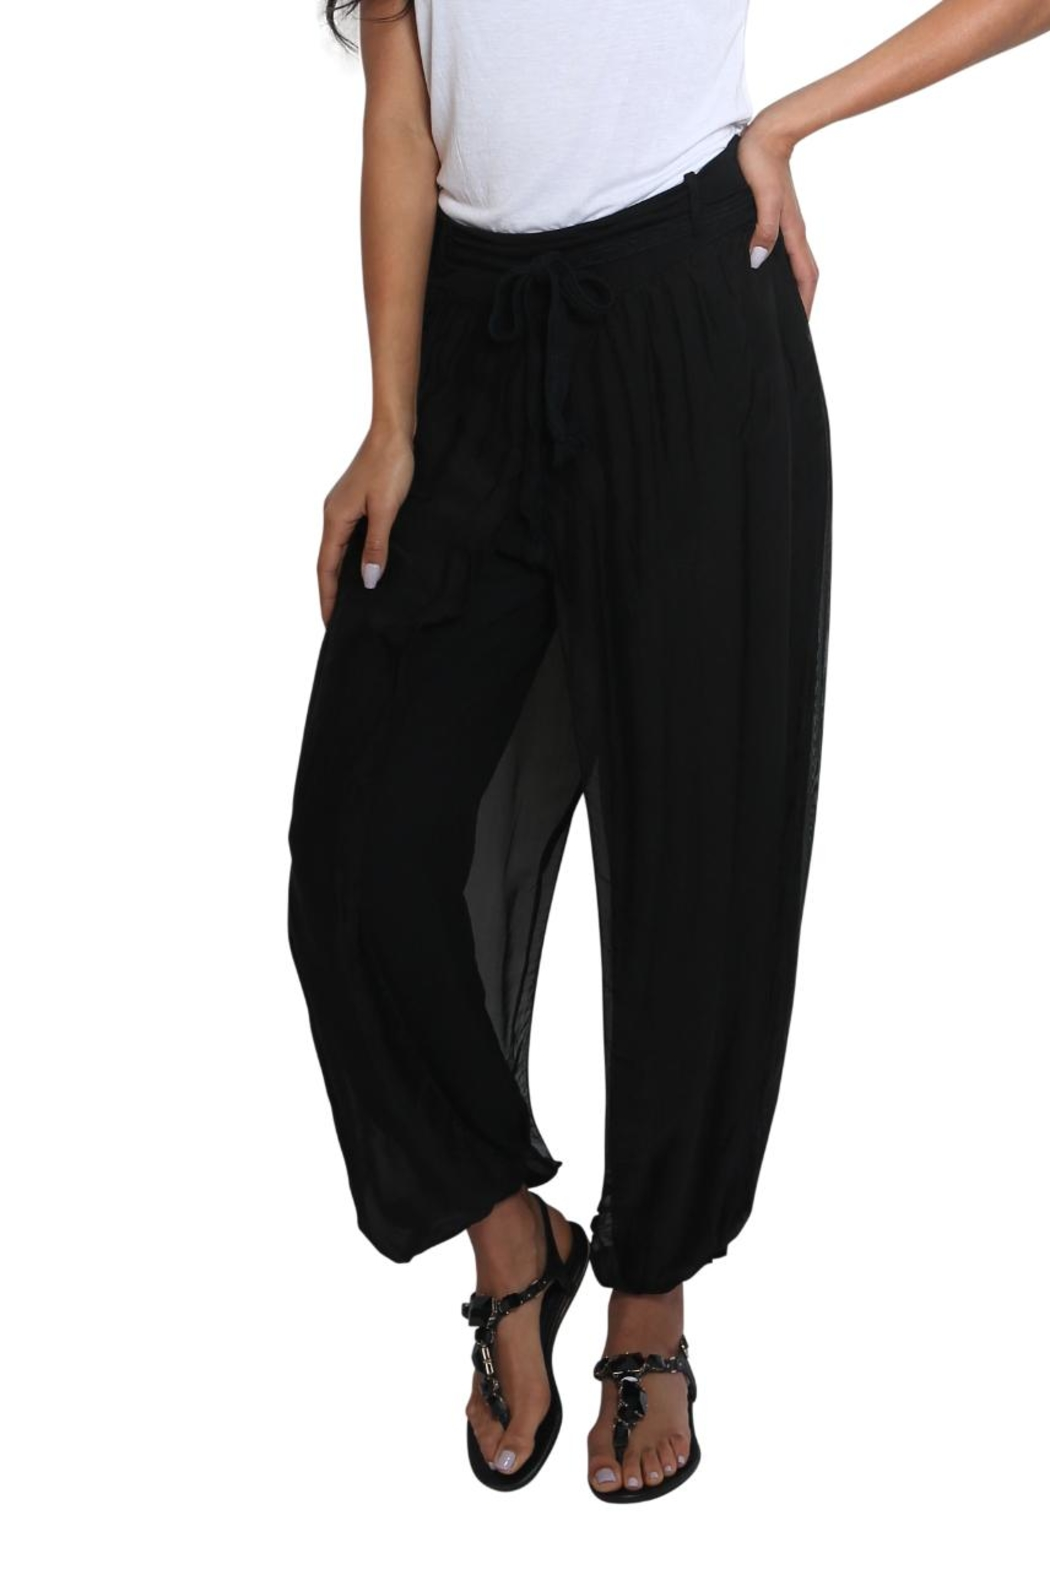 bc92aba10f072 Scandal of Italy Leroy Harem Pants from California by Nadya s Closet ...